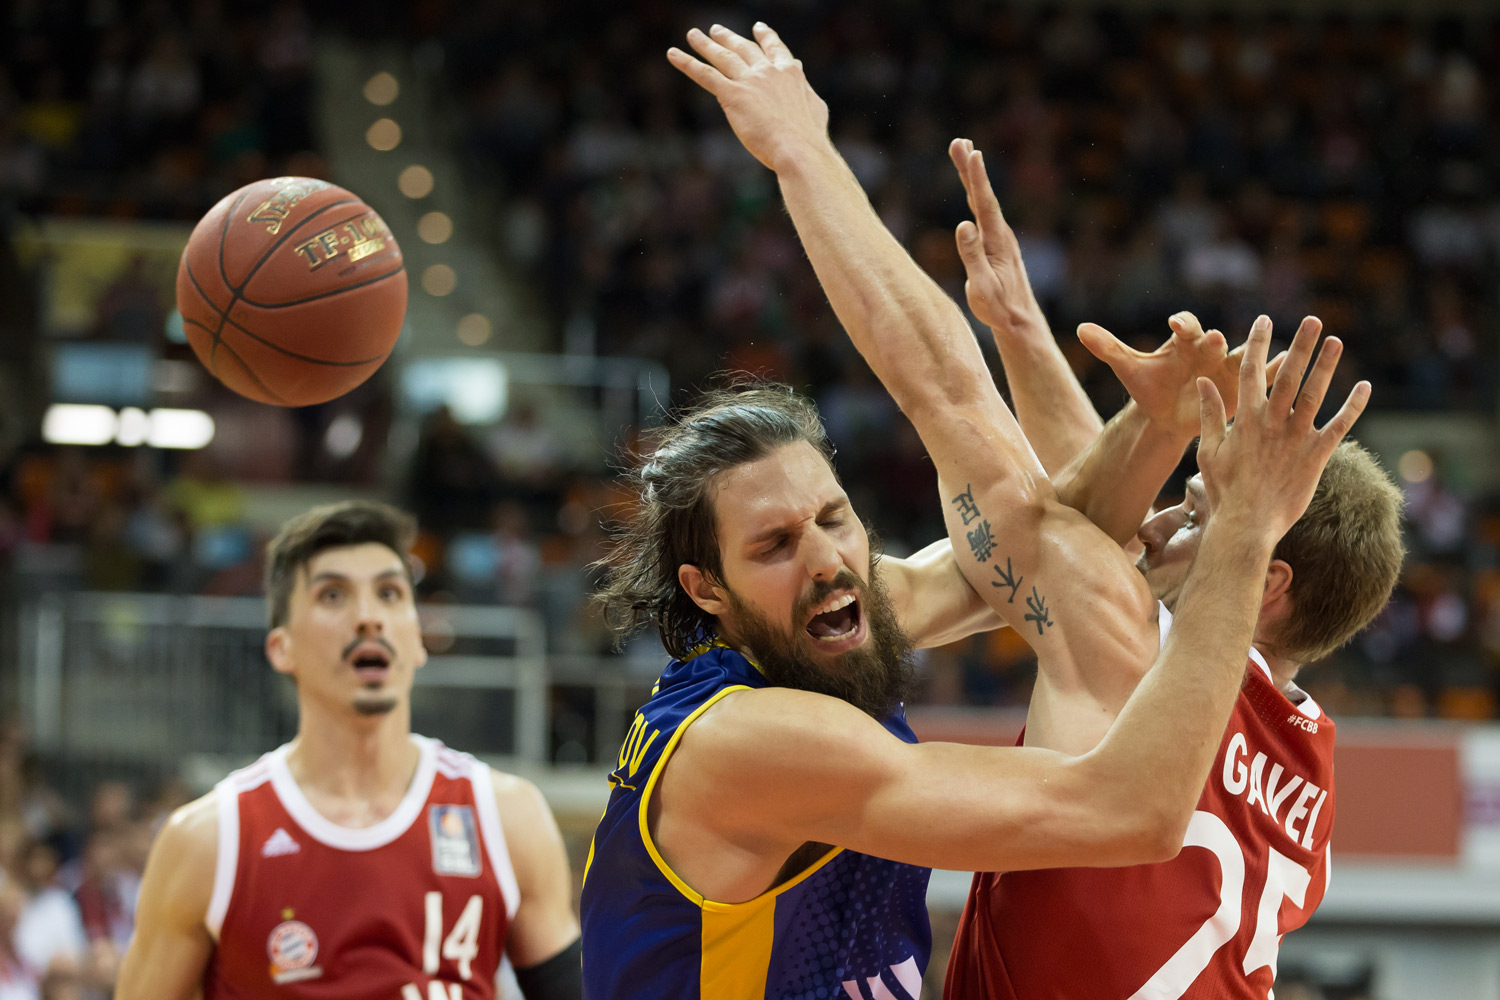 Basketball, Sport, sports, Zweikampf, hustle, hustling, easyCredit BBL, easyCredit Basketball Bundesliga, FC Bayern München, EWE Baskets Oldenburg, Audi Dome München, Spieler, Player